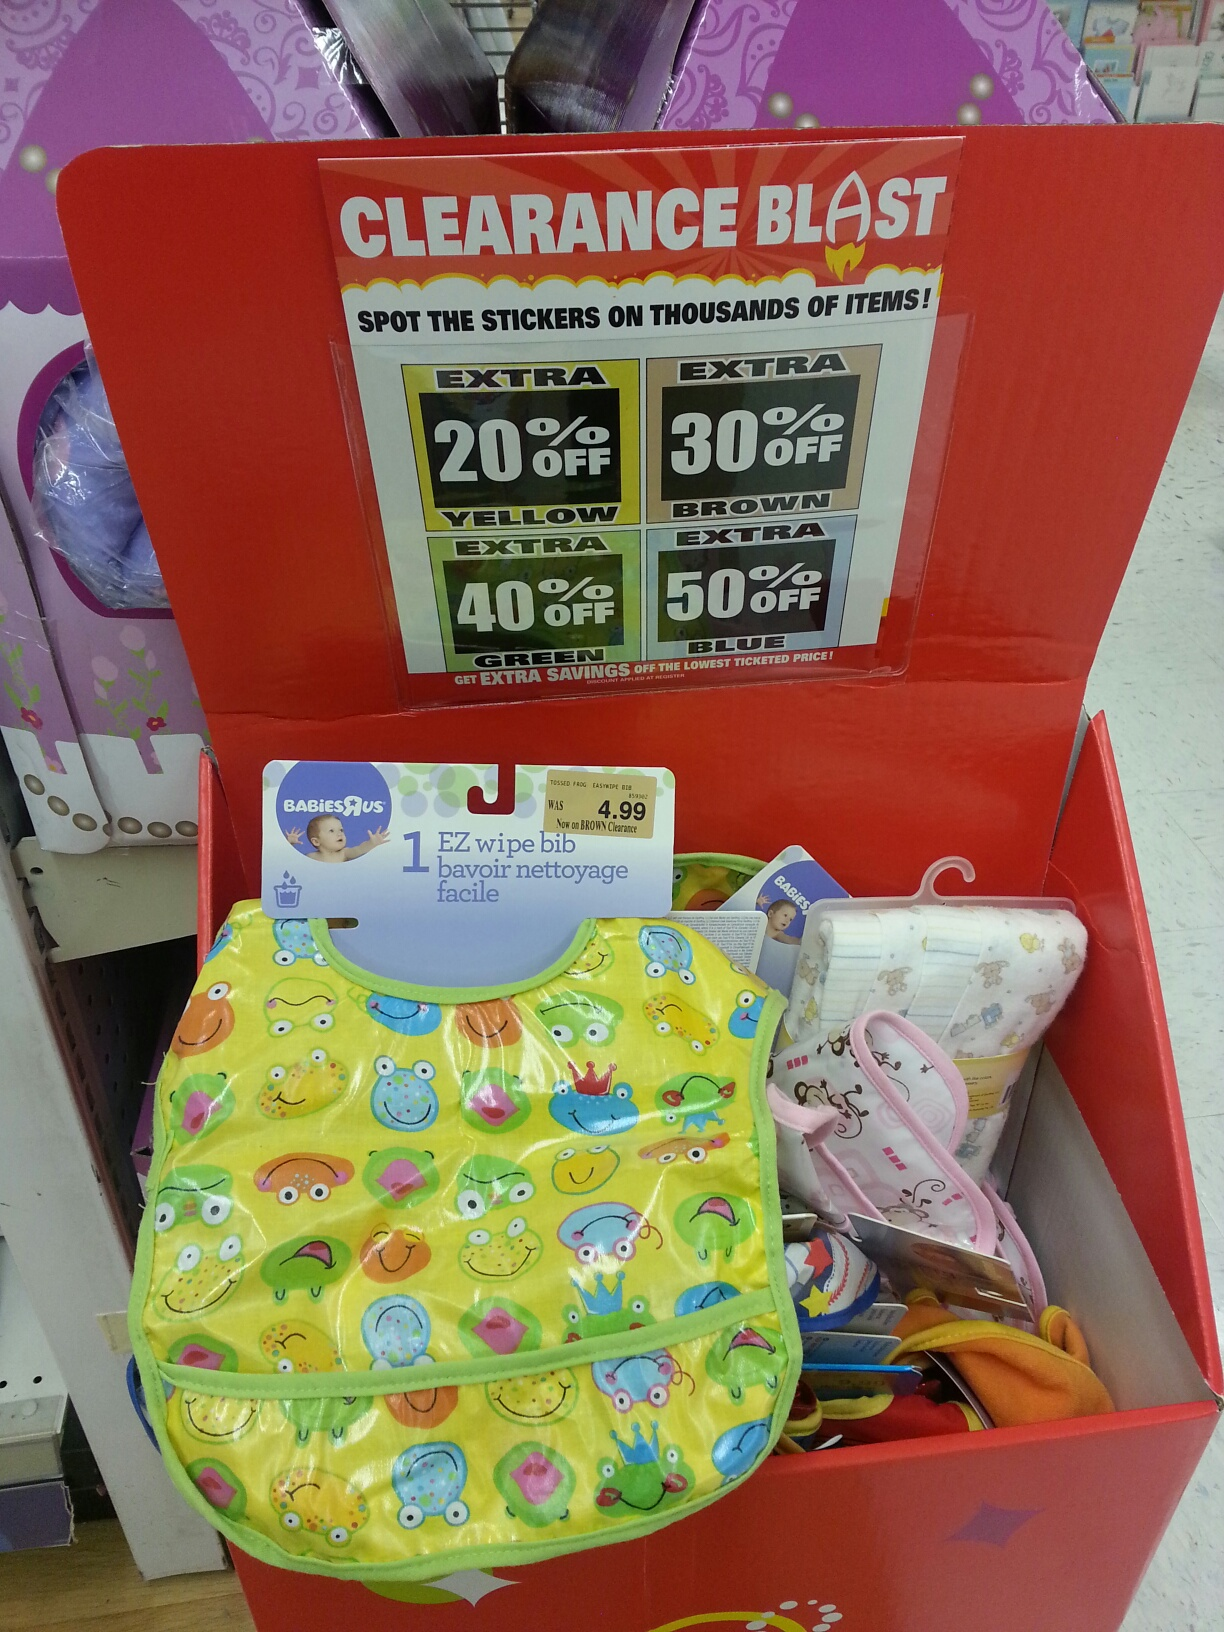 Toys R Us Hand Basket : Rachelle s toys 'r us clearance finds easter ideas